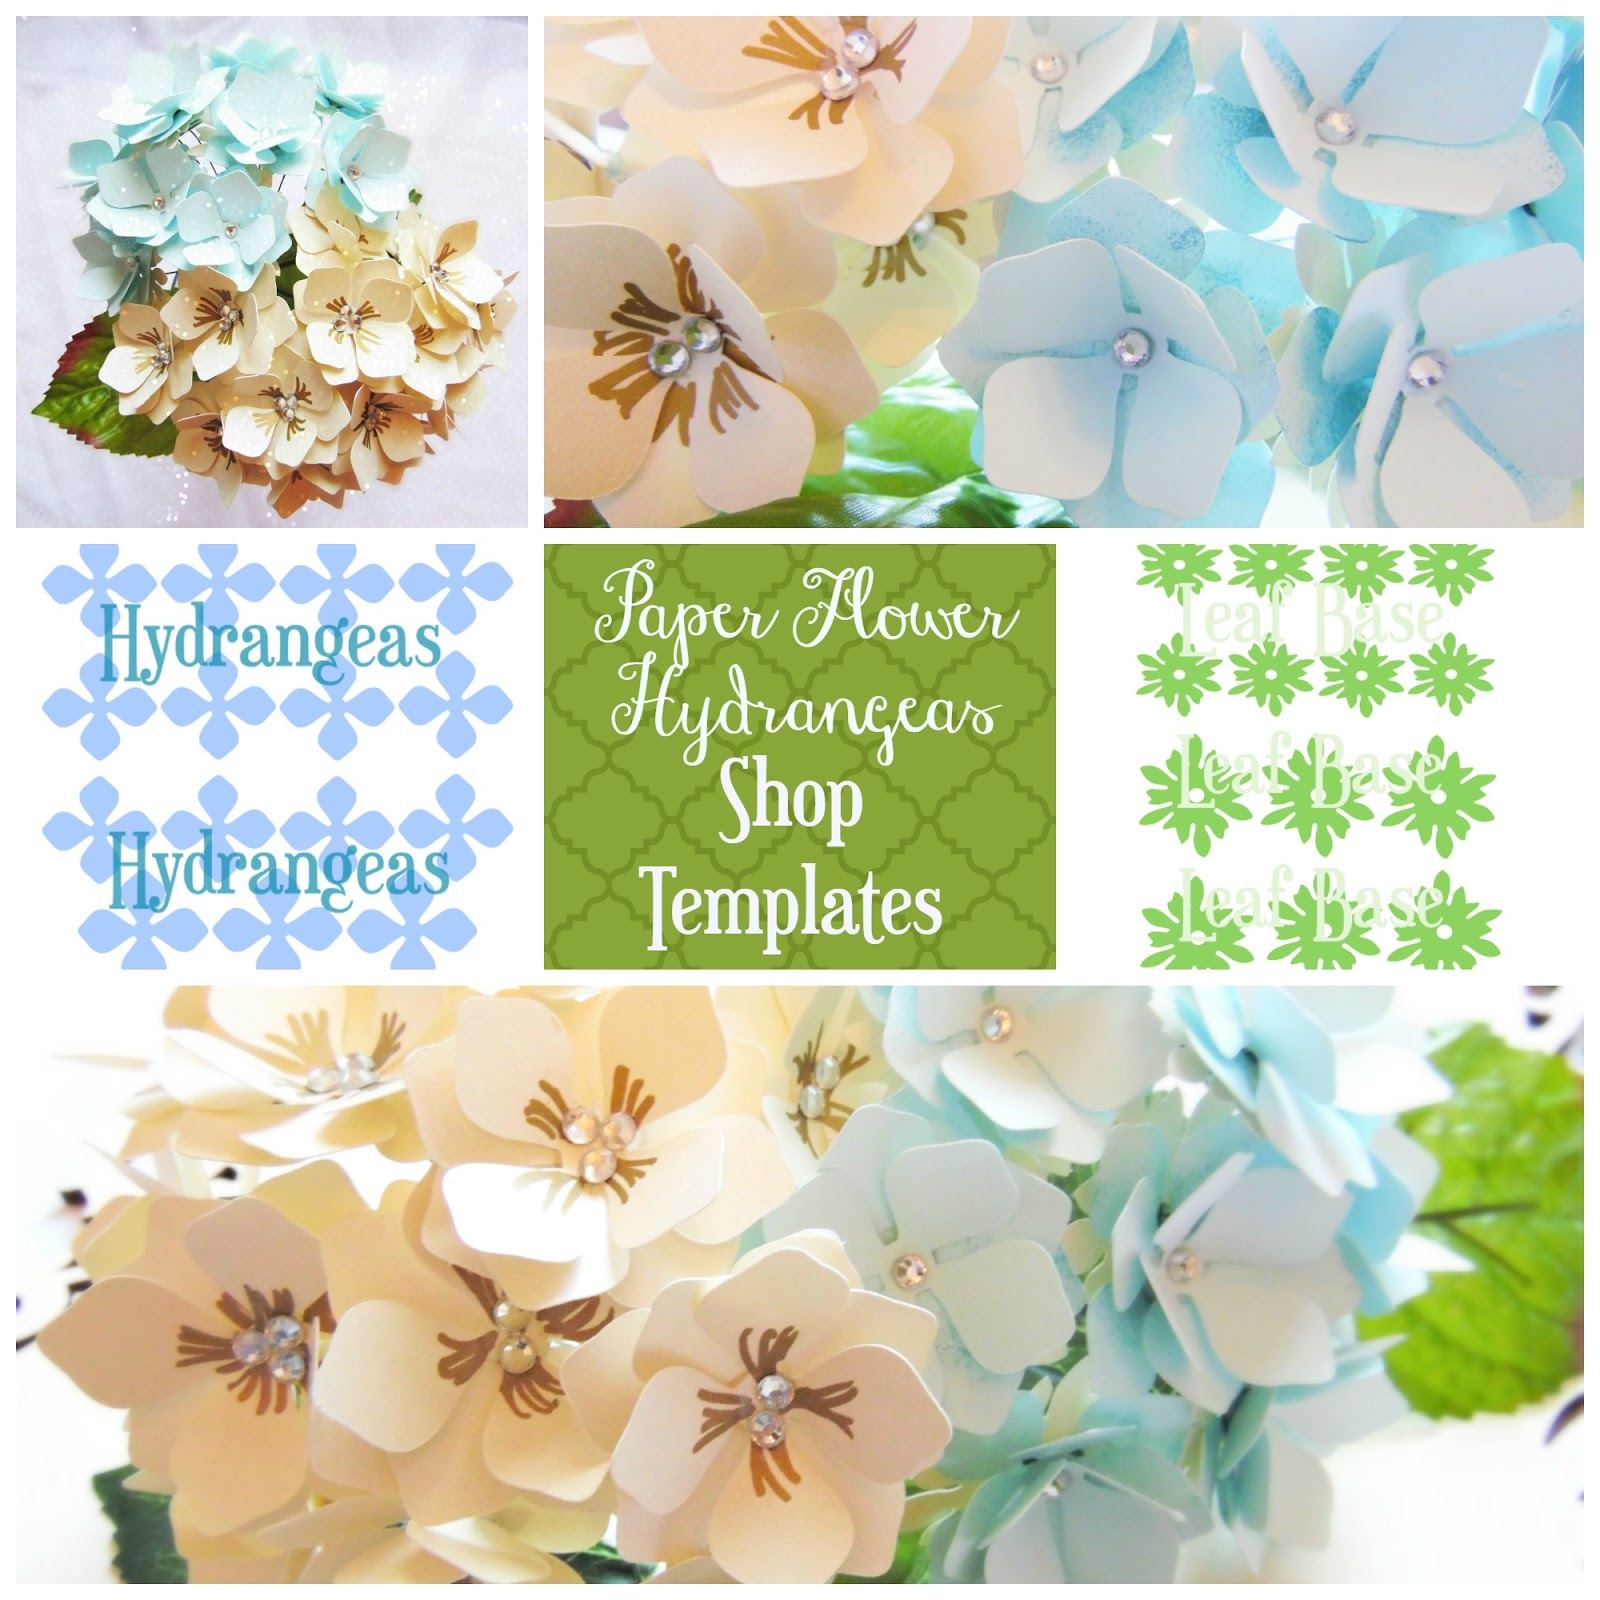 Paper flower hydrangeas flower templates printable patterns link up shout out to tatertots and jello mightylinksfo